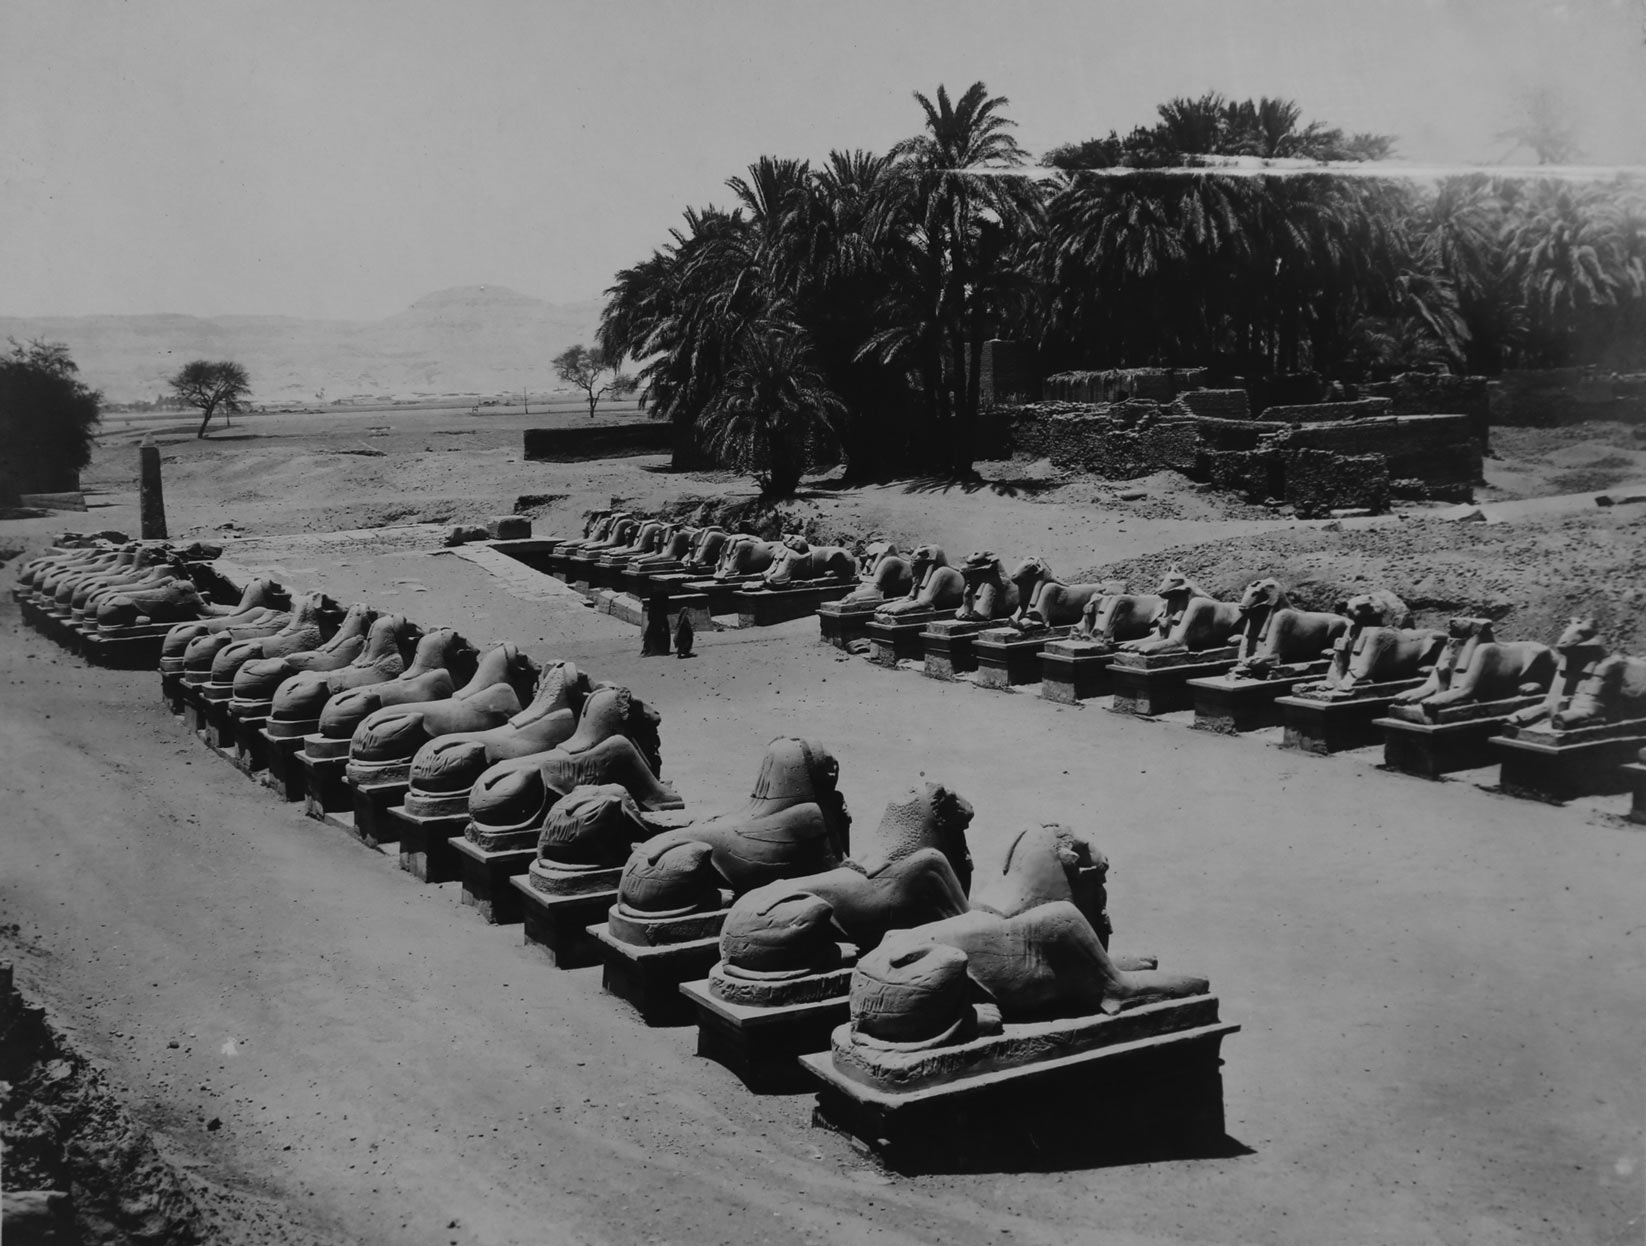 Rows of sphinx at Karnak, image from the Kovar Collection, auctioned 2014.